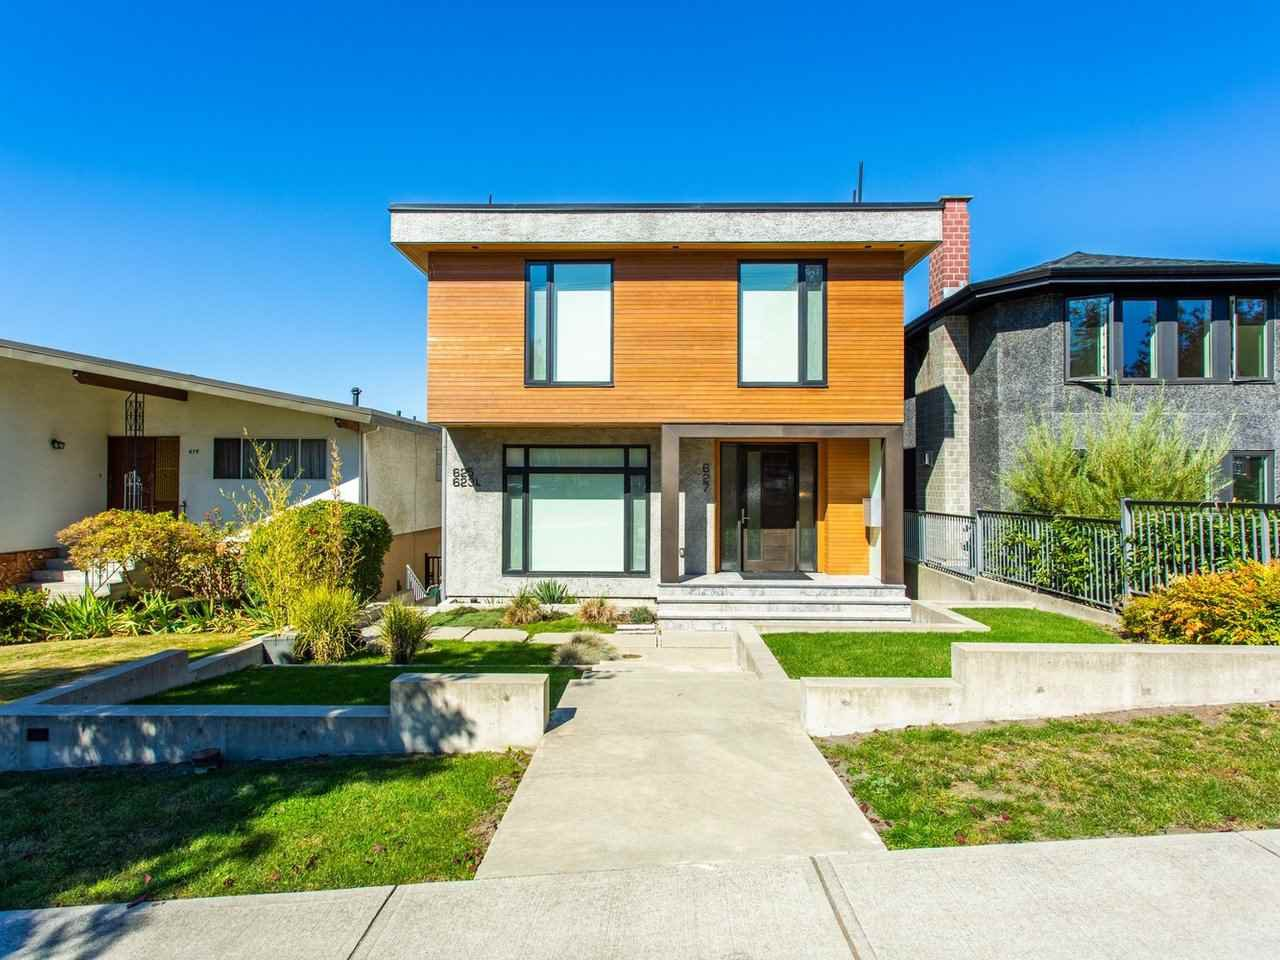 Main Photo: 627 E 28TH Avenue in Vancouver: Fraser VE House for sale (Vancouver East)  : MLS®# R2499085